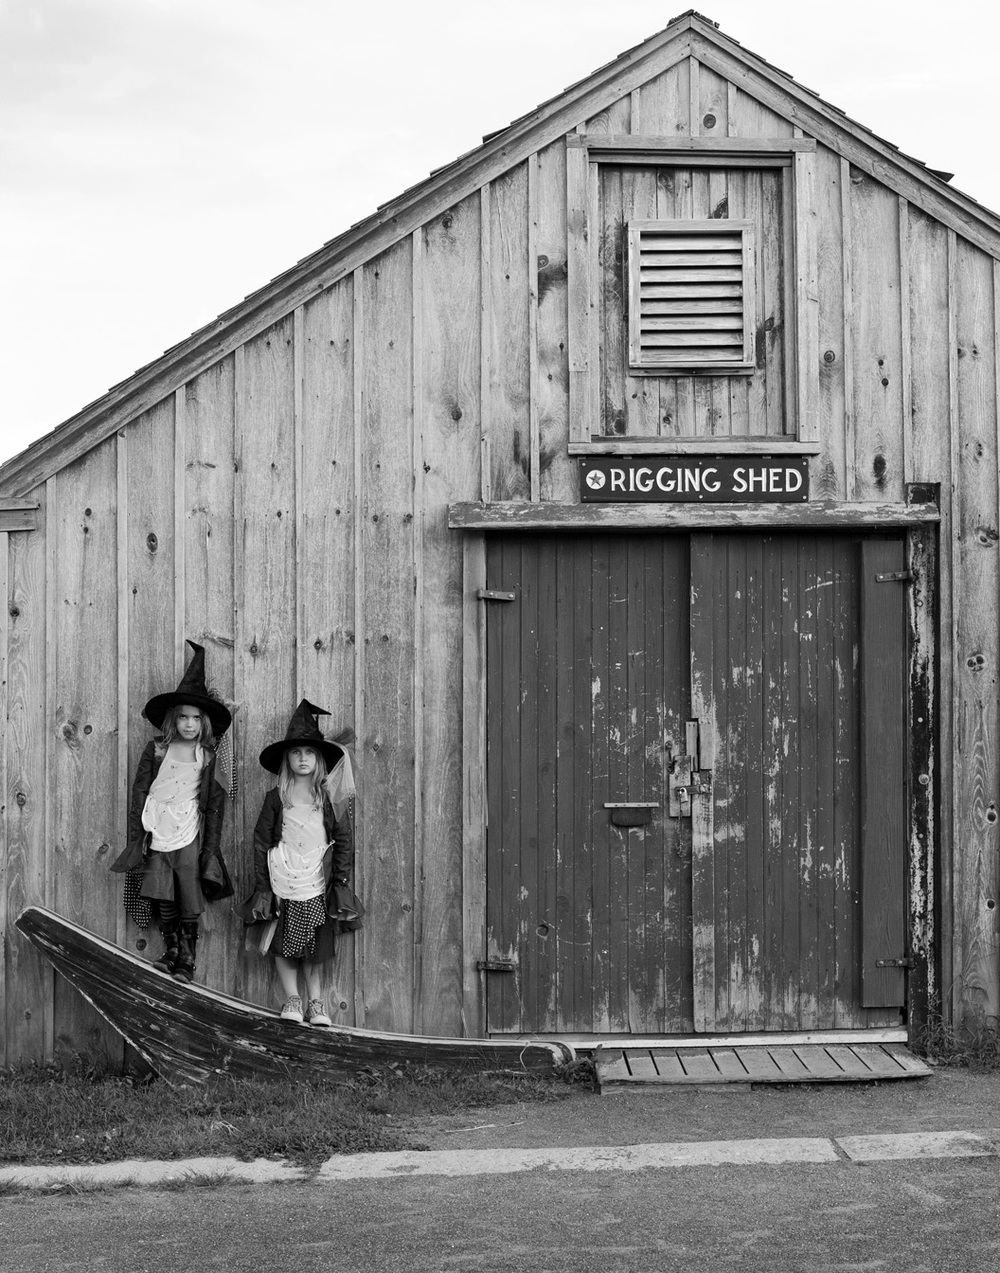 Rigging Shed Portrait – Central Wharf / Salem Maritime